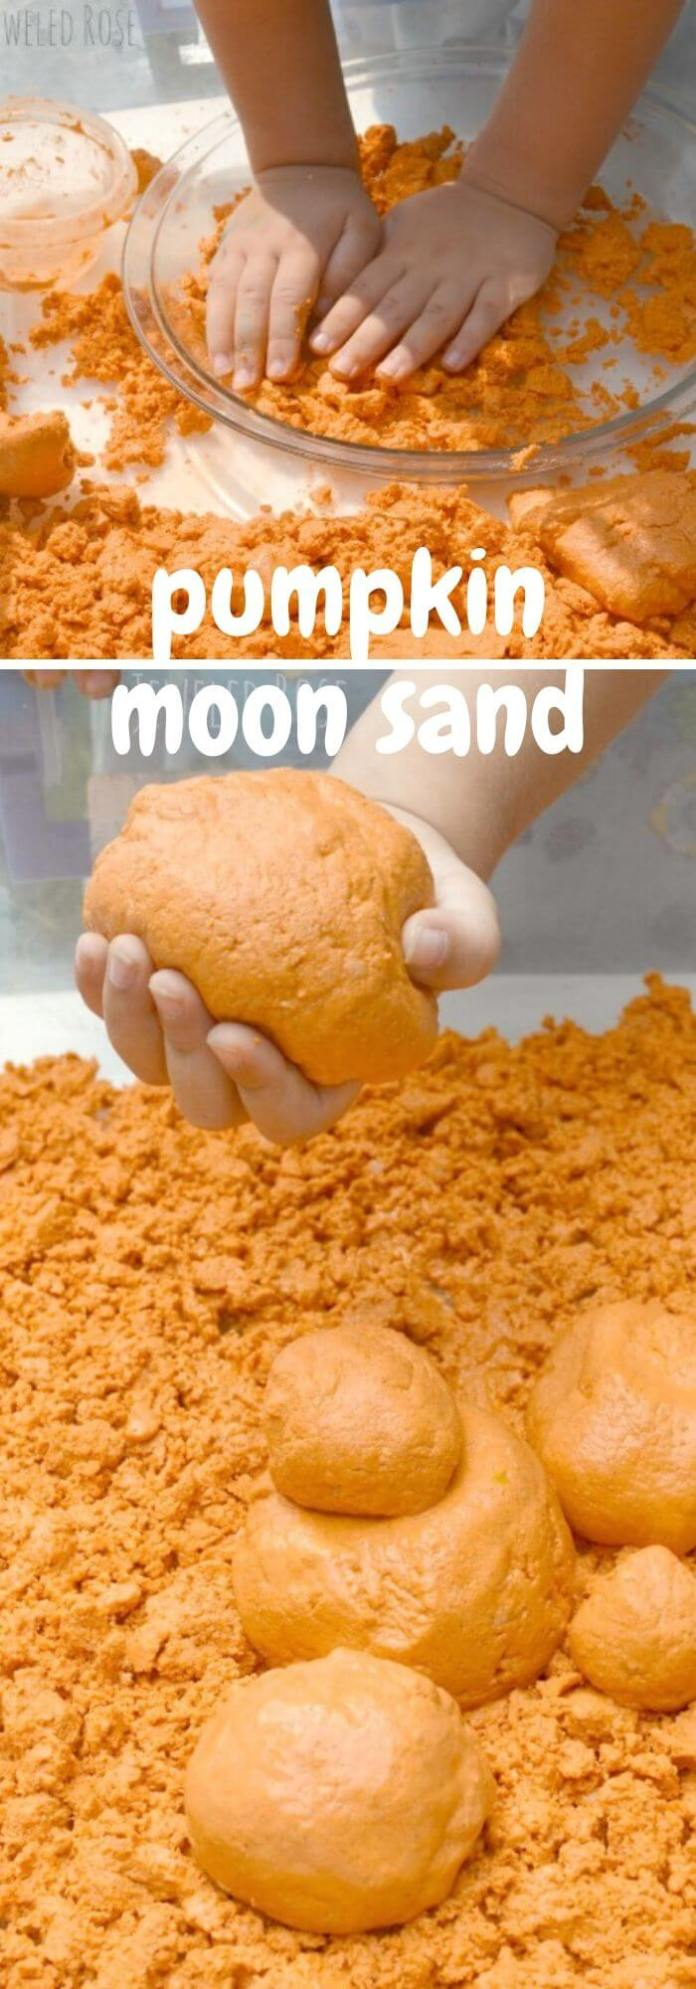 The pumpkin moon sand DIY is the most famous of them all